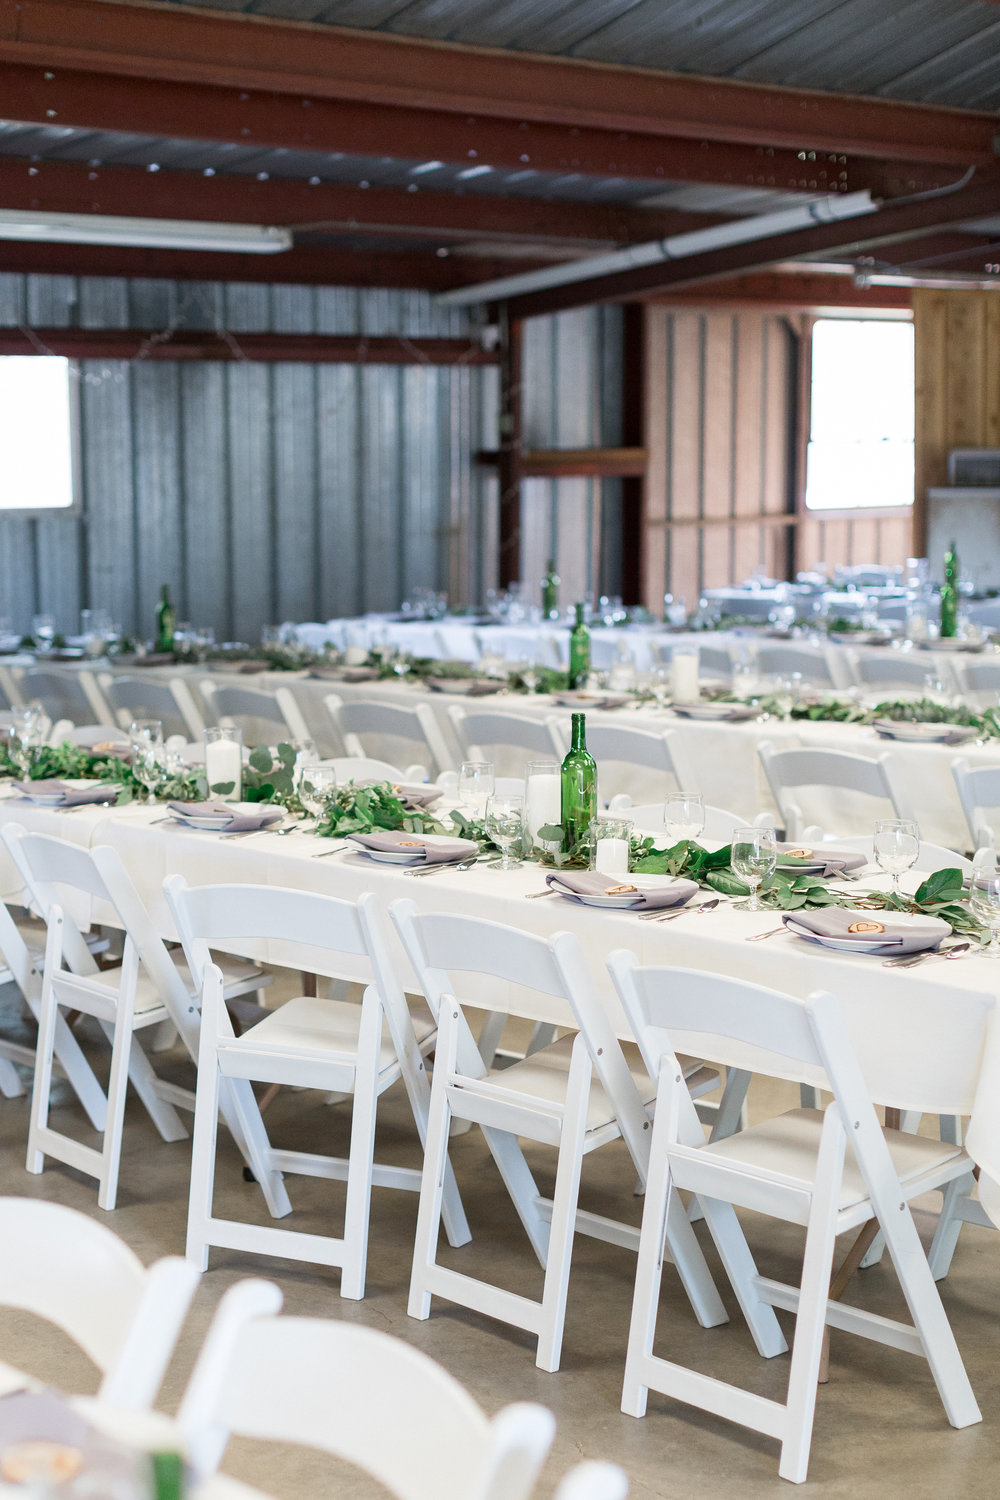 Patrick-Ranch-Wedding-Photos-201.jpg